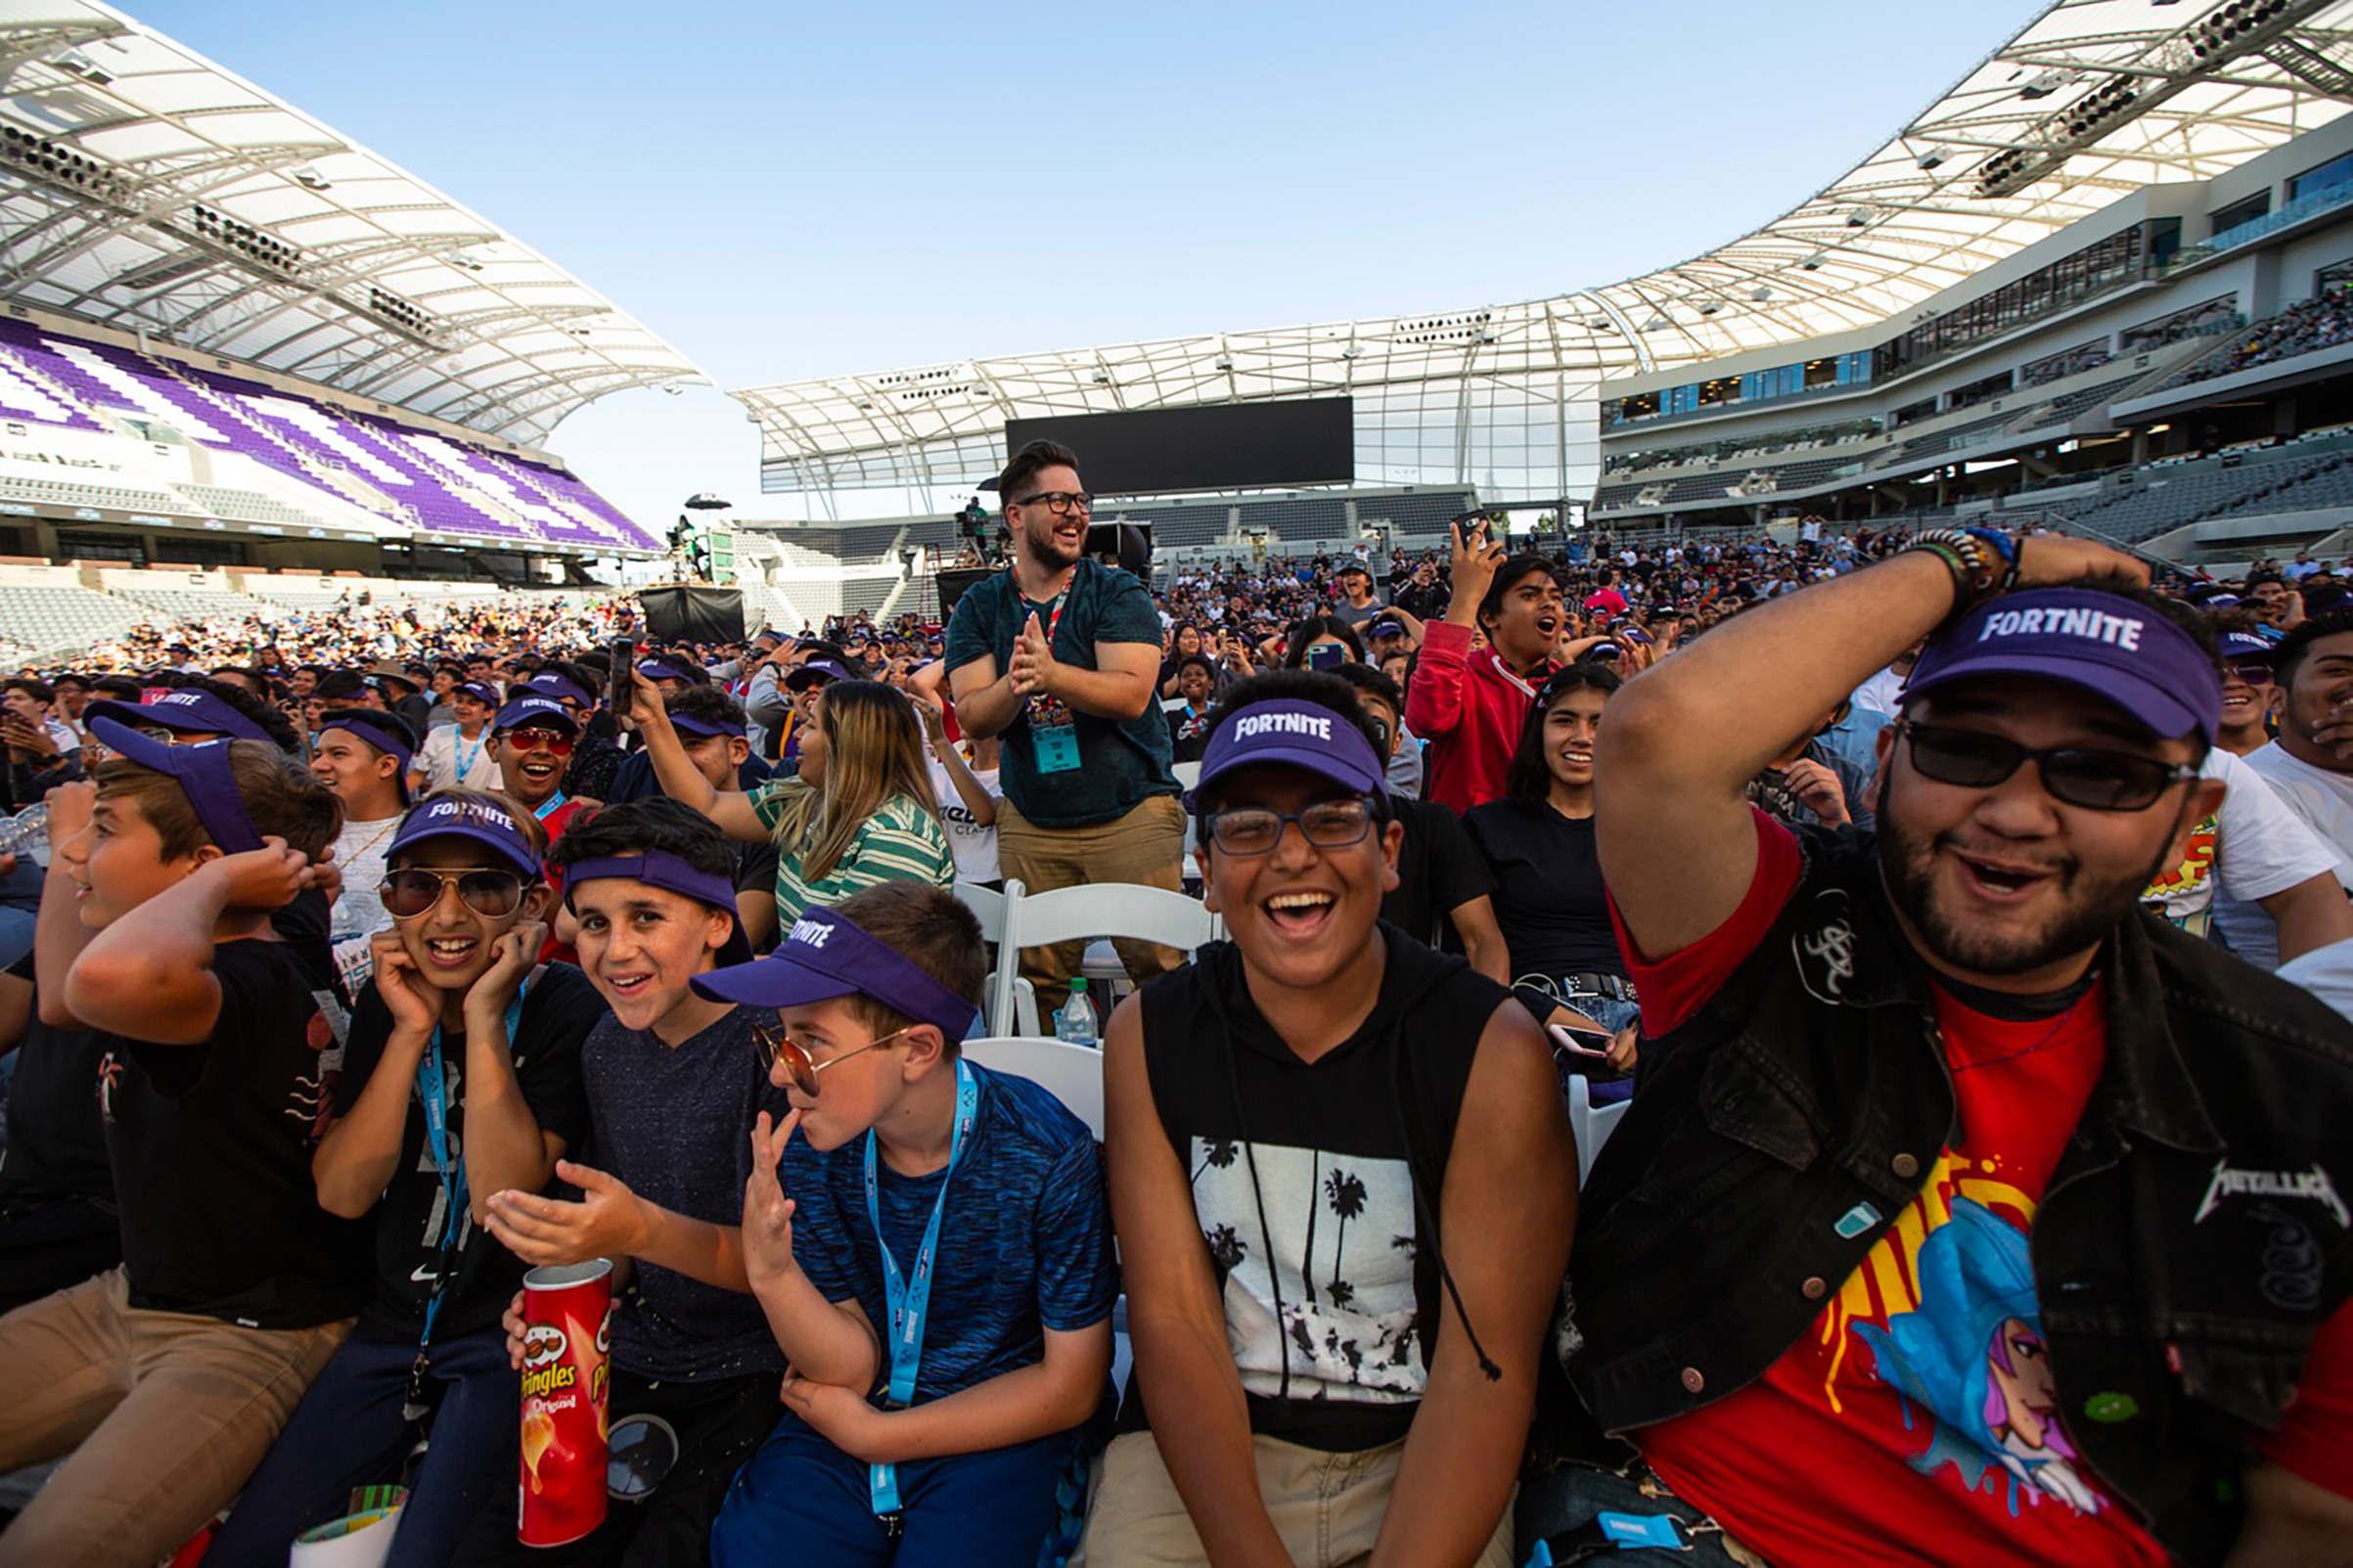 Gamers cheer during the Epic Games Fortnite E3 tournament in Los Angeles on June 12